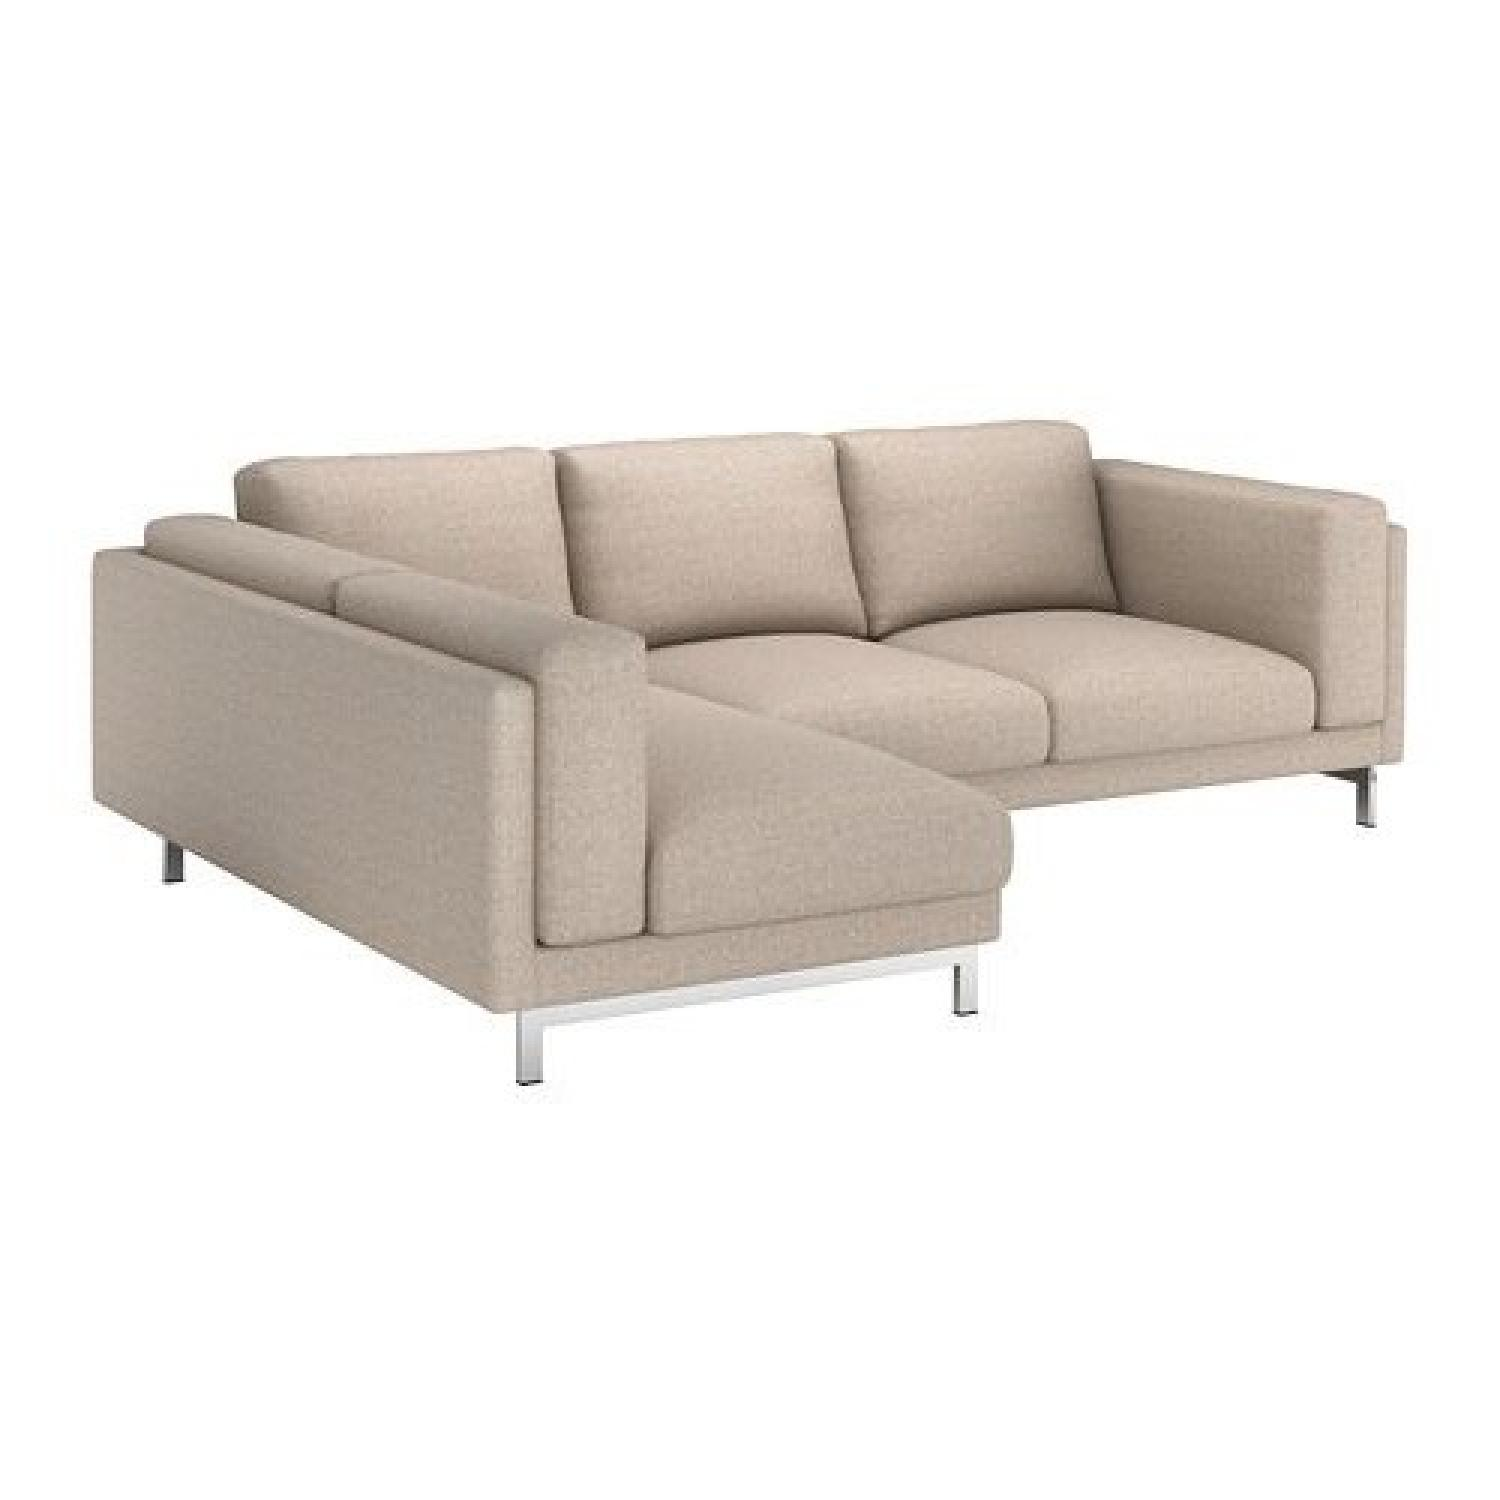 Bettsofa Ikea Ikea Nockeby Sectional Sofa W Left Chaise